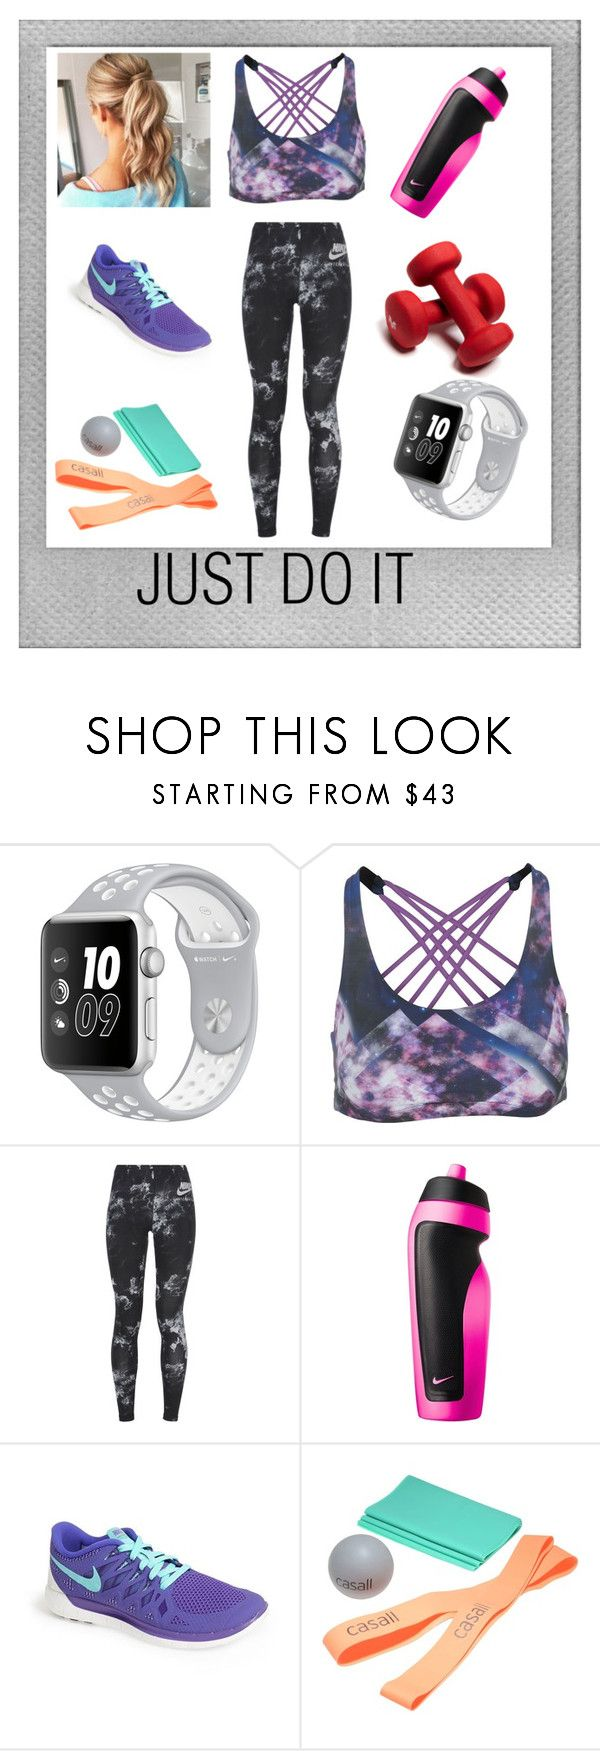 just do it by feliciamia on Polyvore featuring NIKE, Onzie, Casall and Polaroid